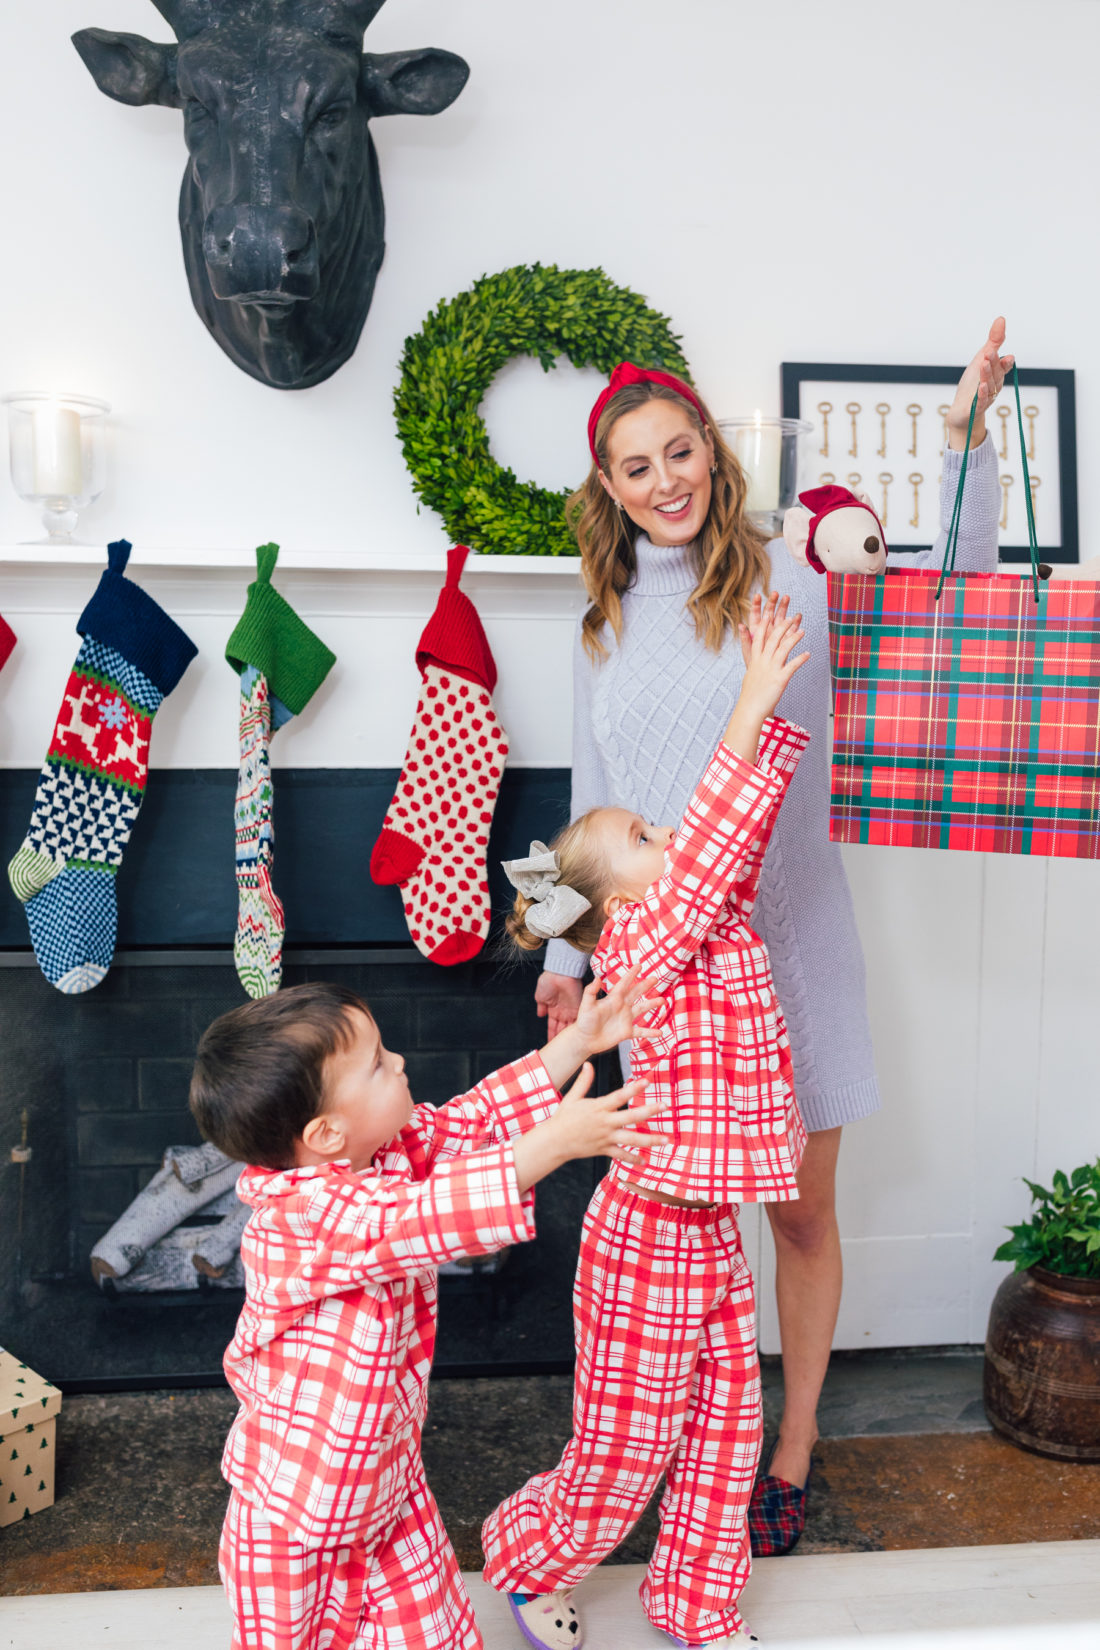 Eva Amurri Martino tempts children Marlowe and Major with a wrapped gift, in their matching pajamas, standing in front of their Christmas stockings, all from Garnet Hill